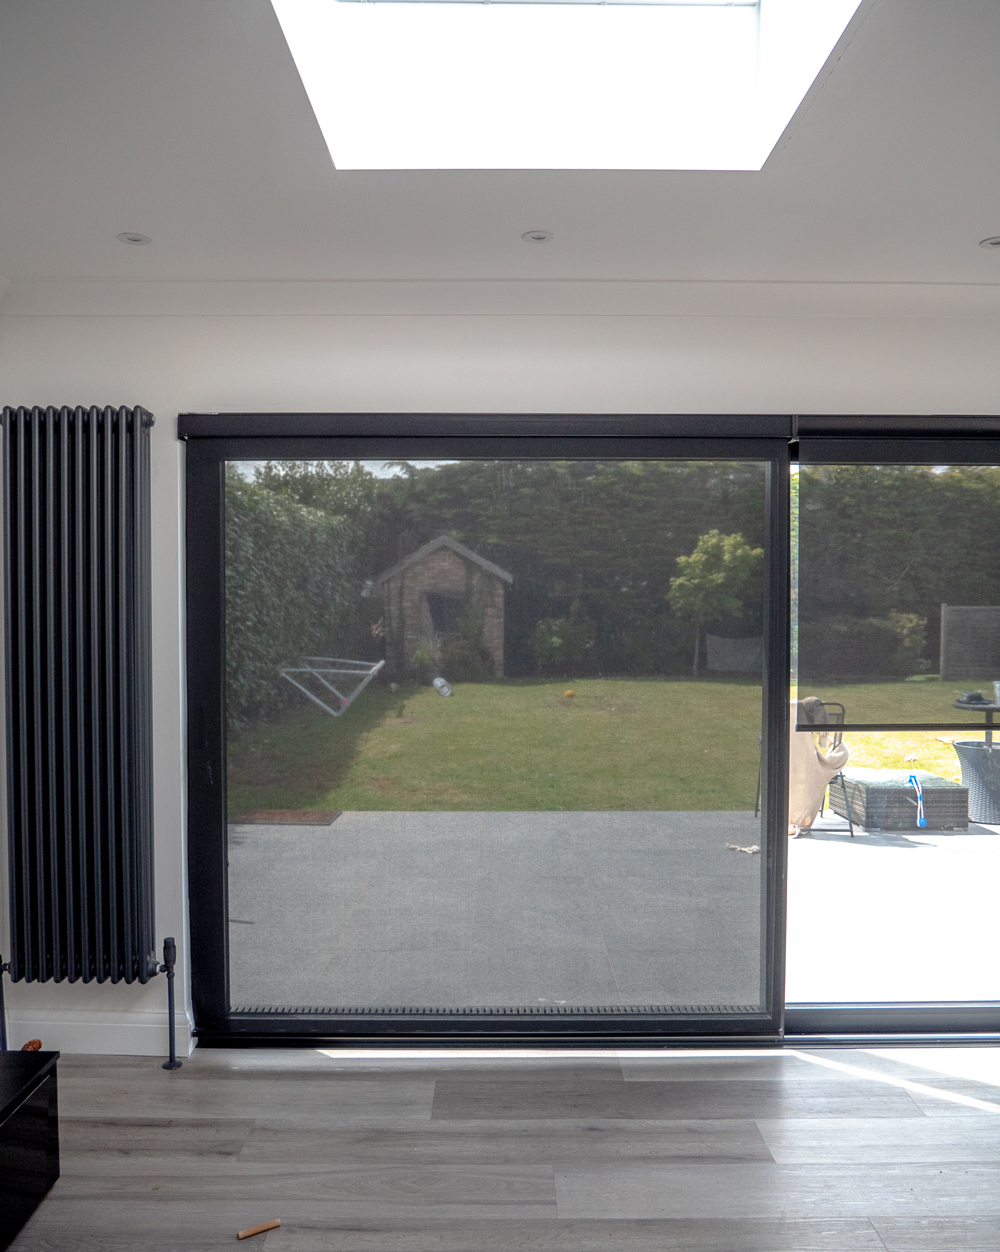 Our screen roller blinds block 97% UV Rays